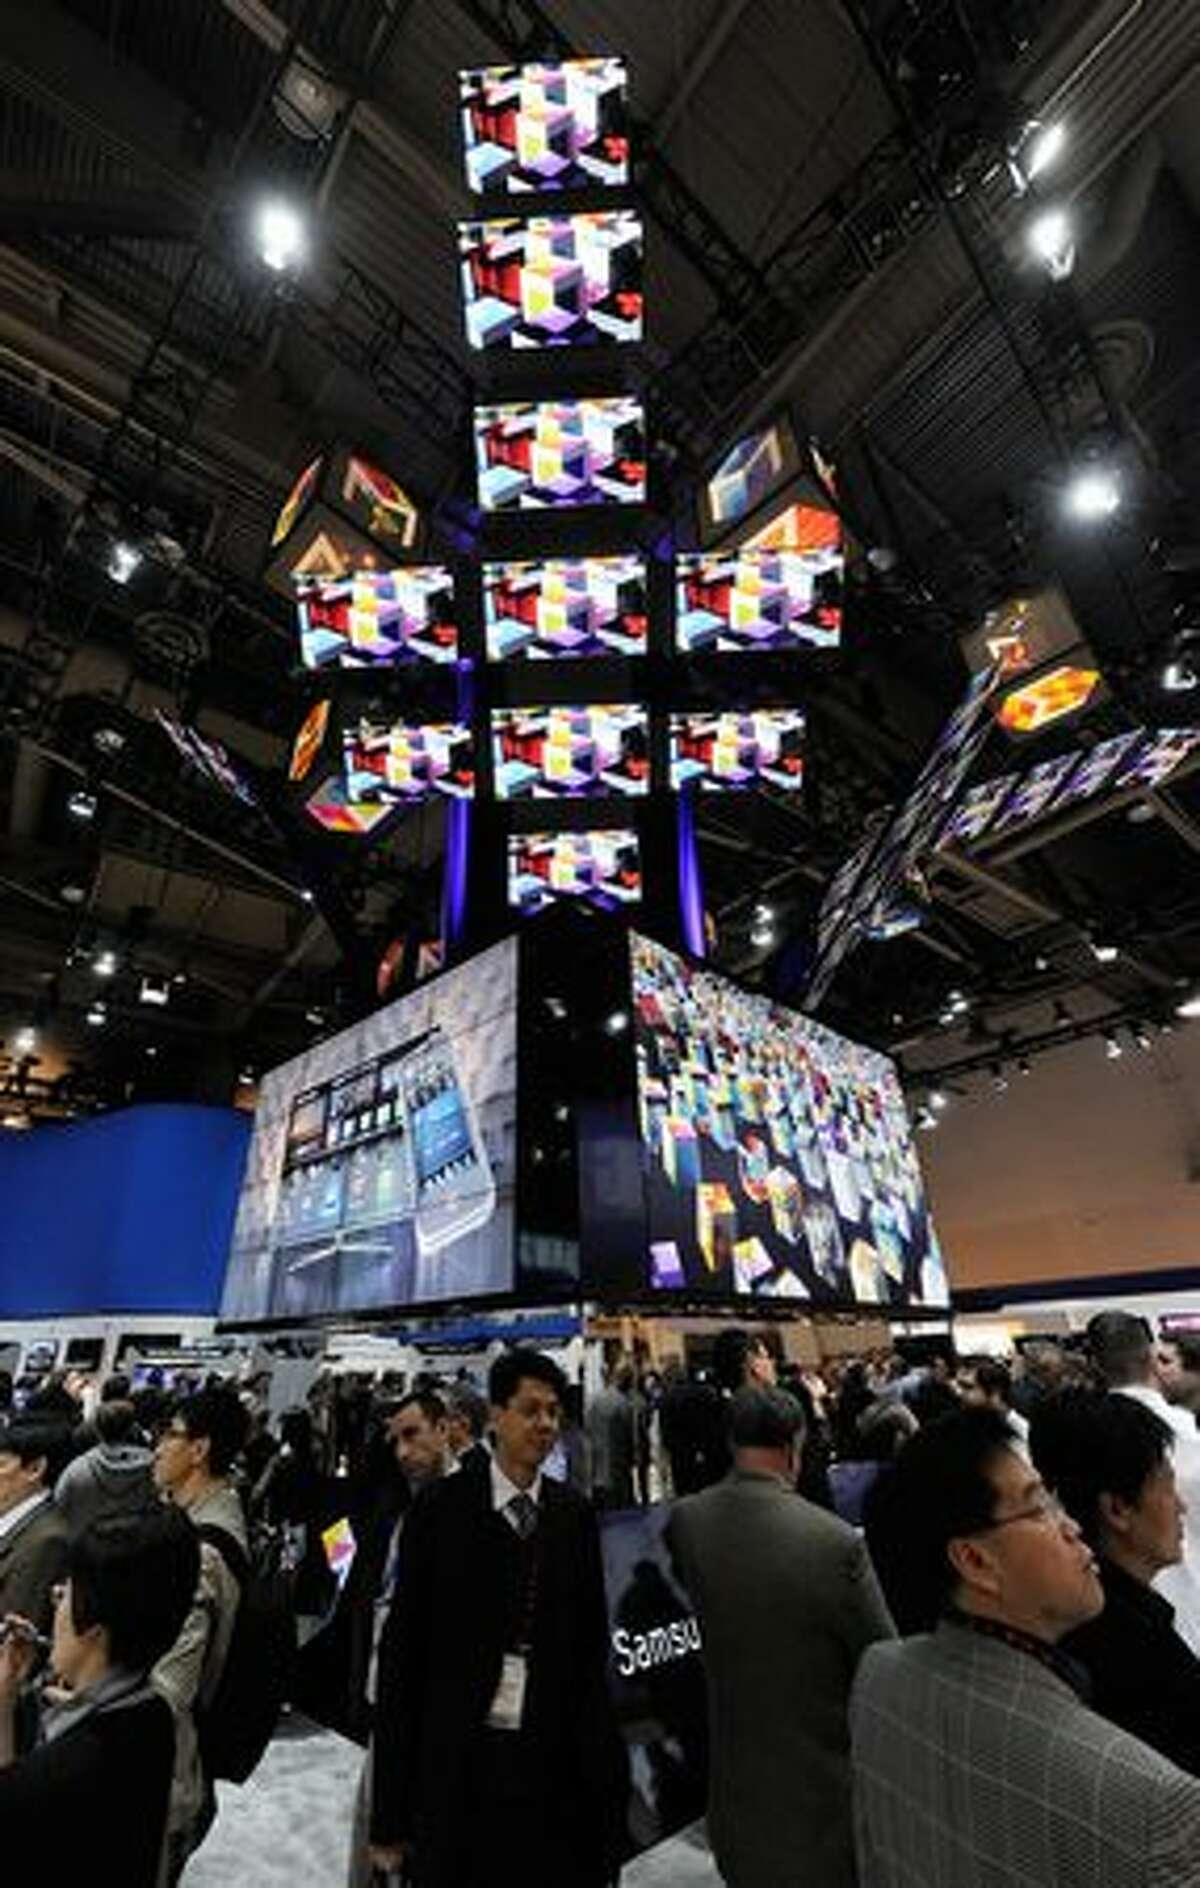 A general view of the Samsung booth Jan. 6 at the 2011 International Consumer Electronics Show in Las Vegas.